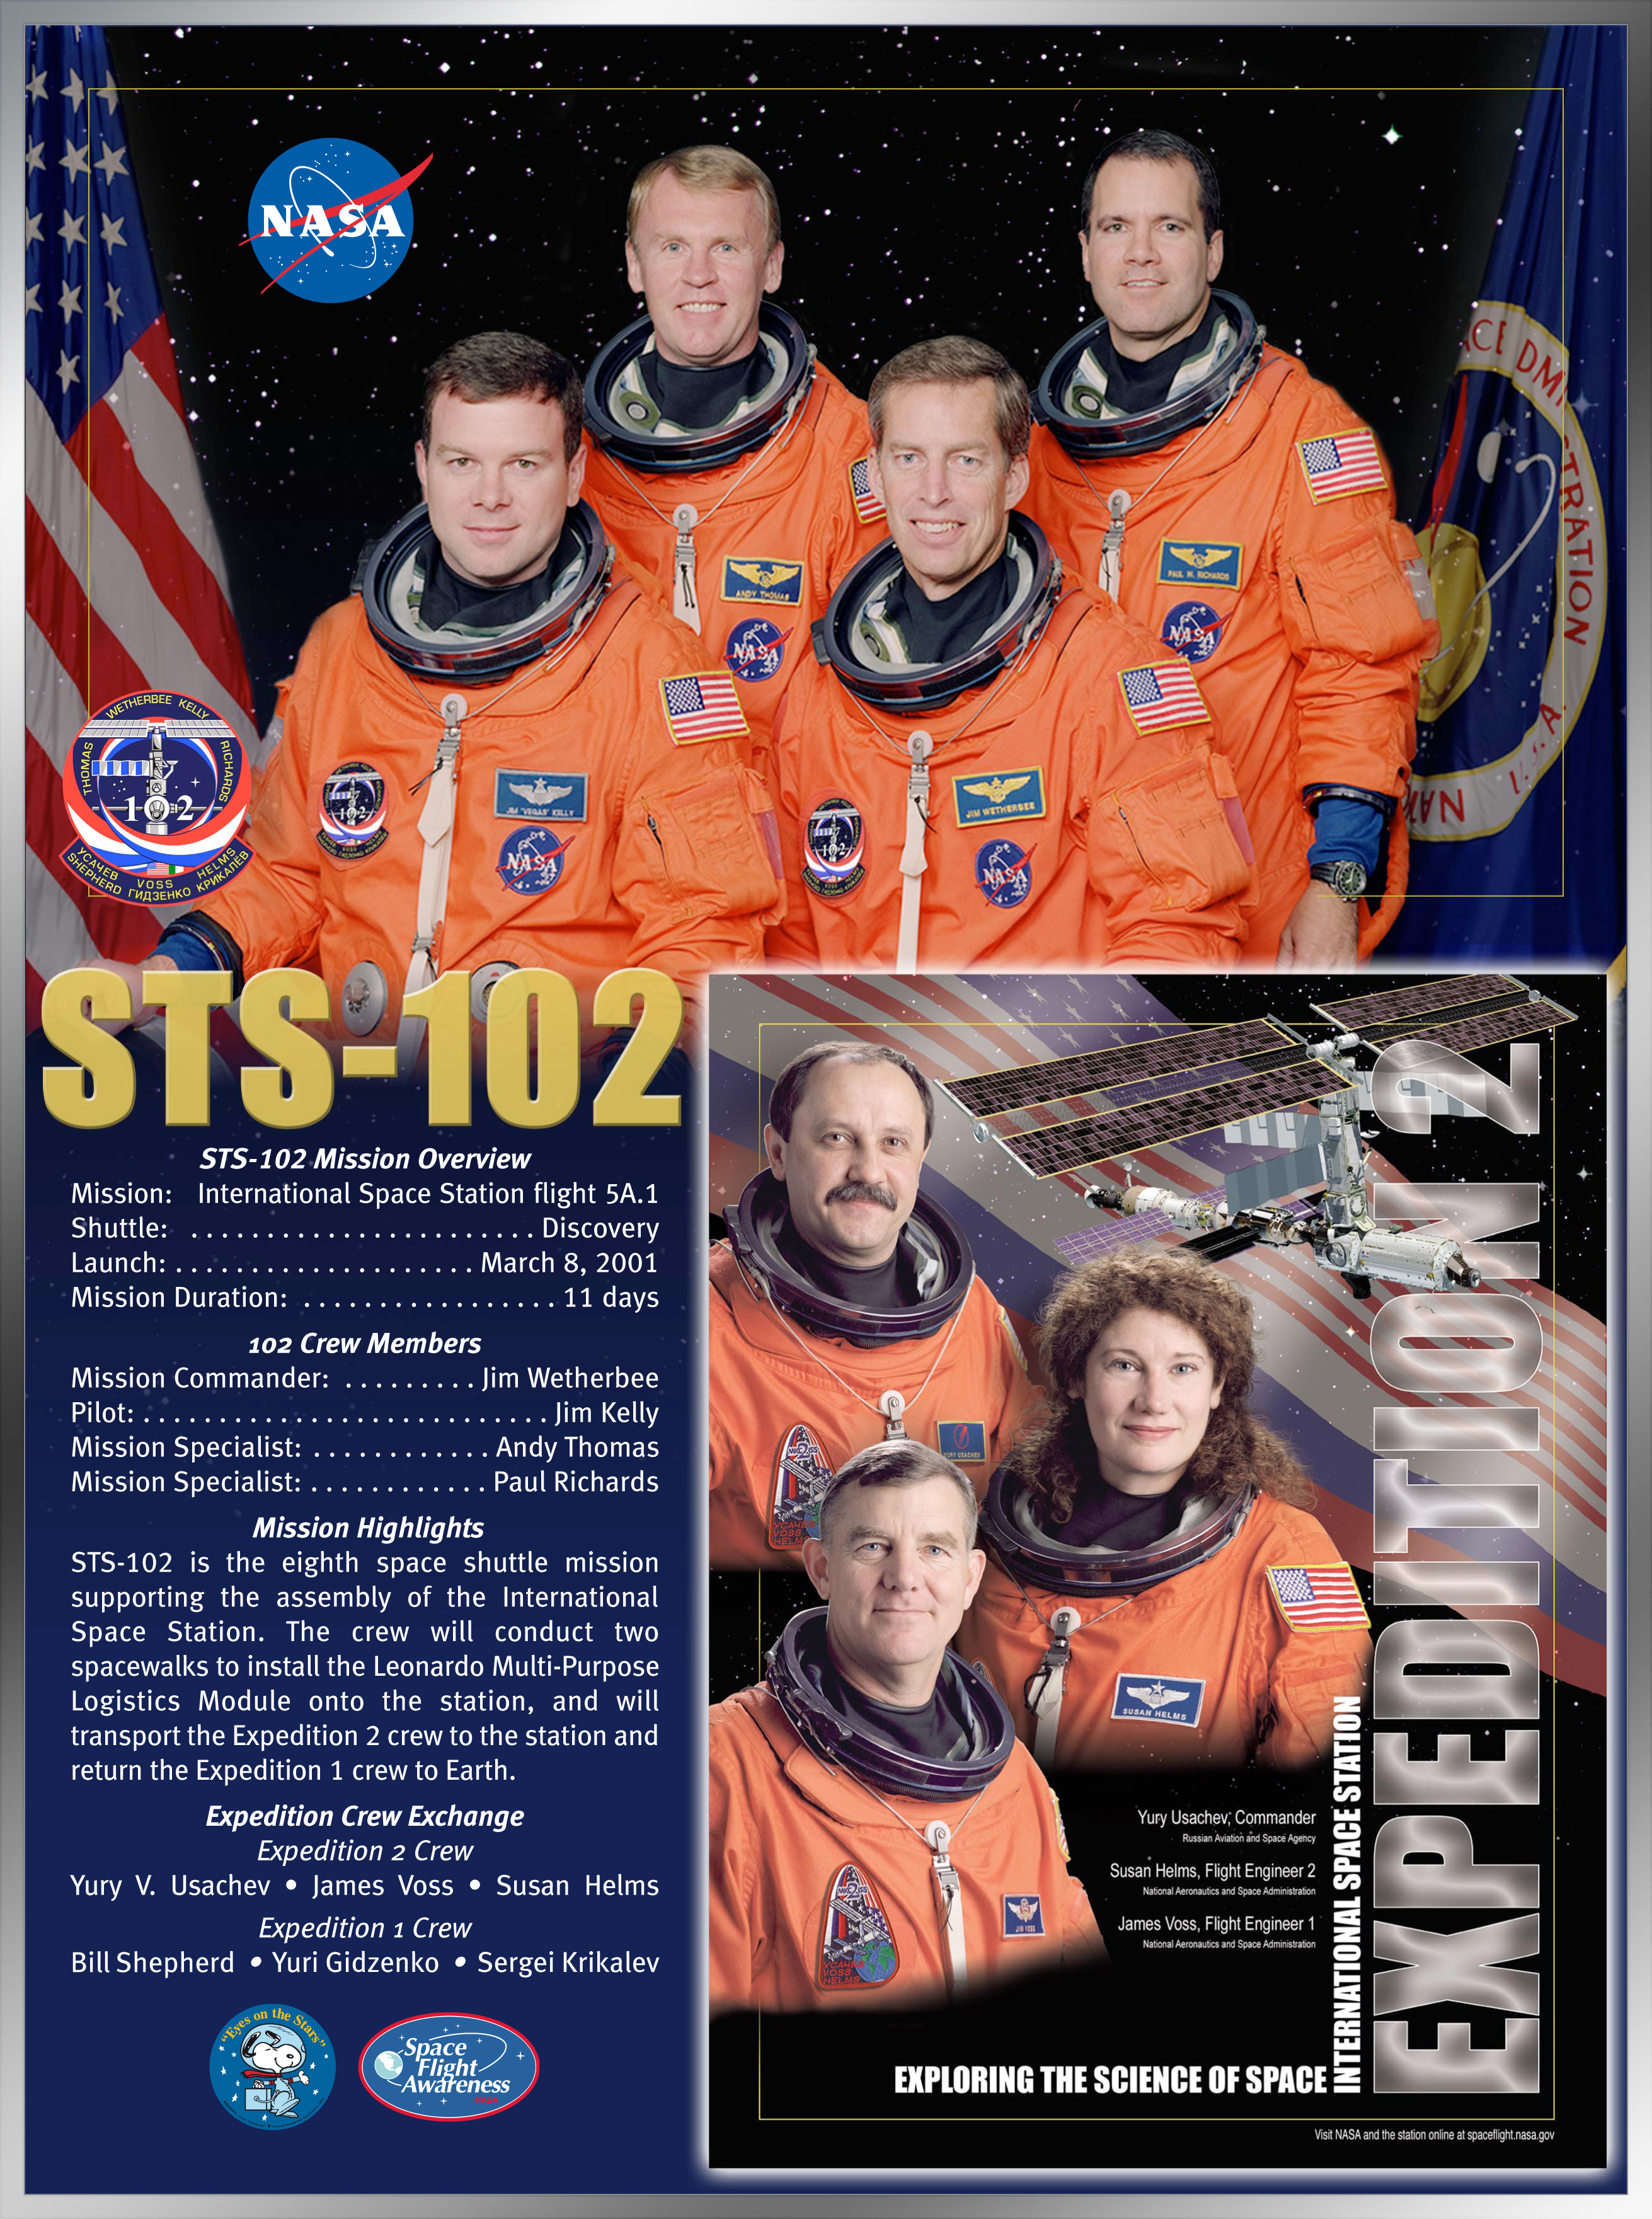 STS-102 Official Poster. Image credit Wikimedia